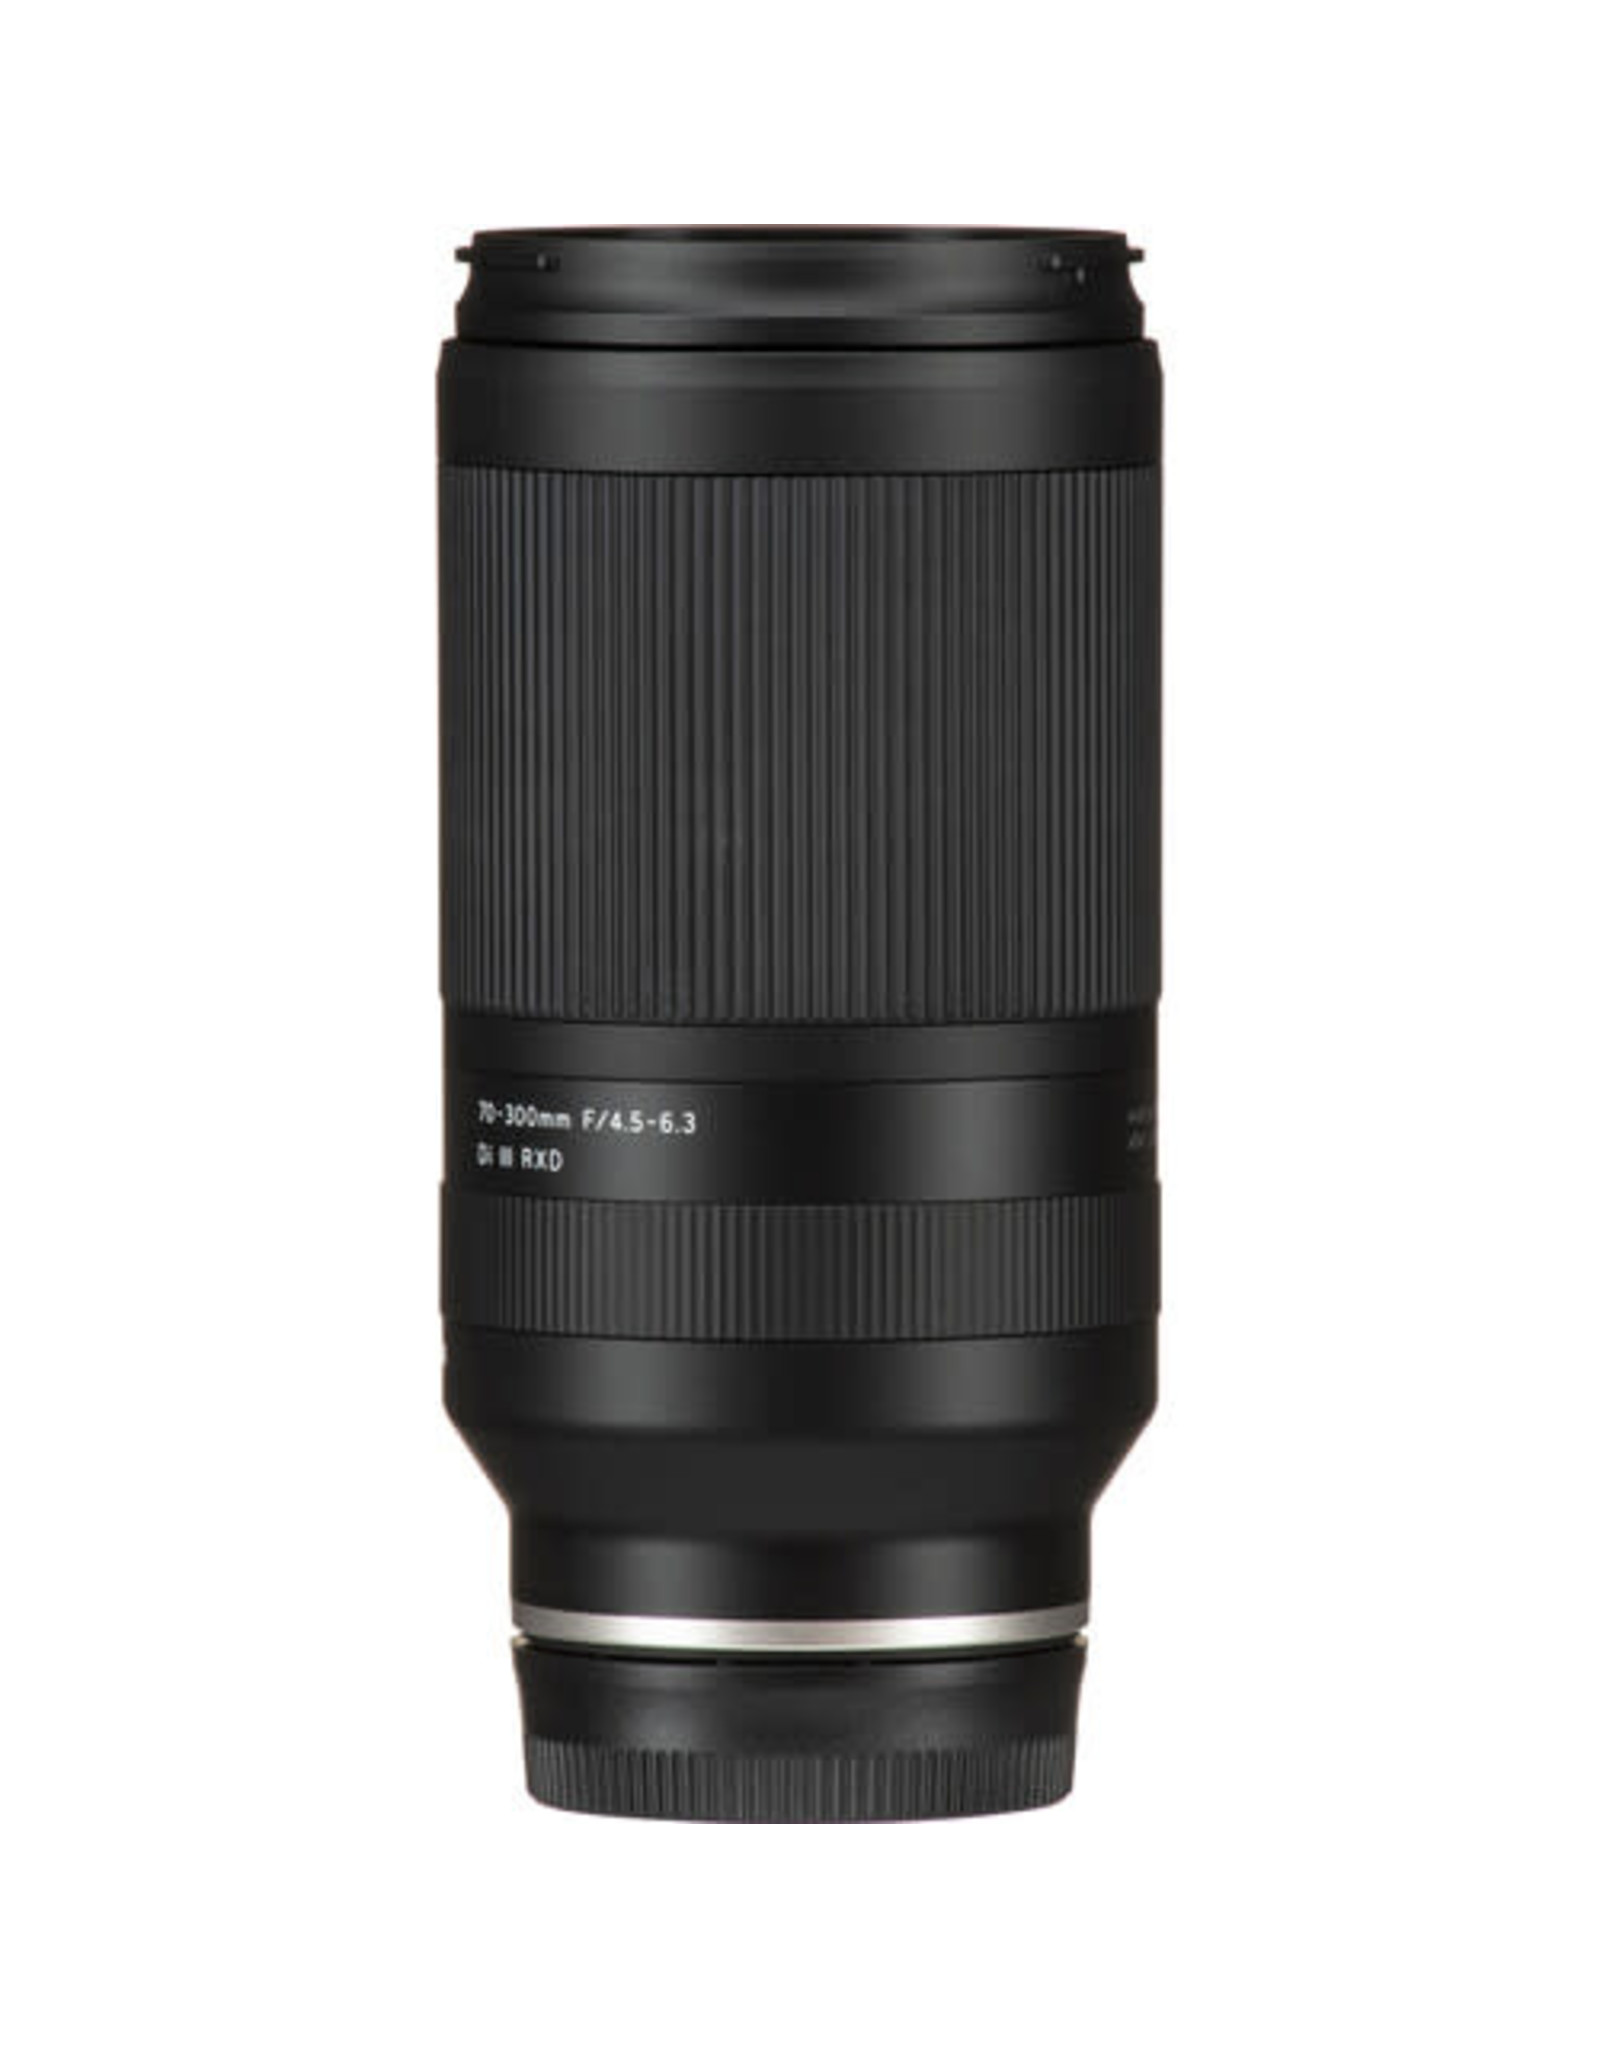 Tamron Tamron AF 70-300mm f/4.5-6.3 Di III RXD Lens for Sony